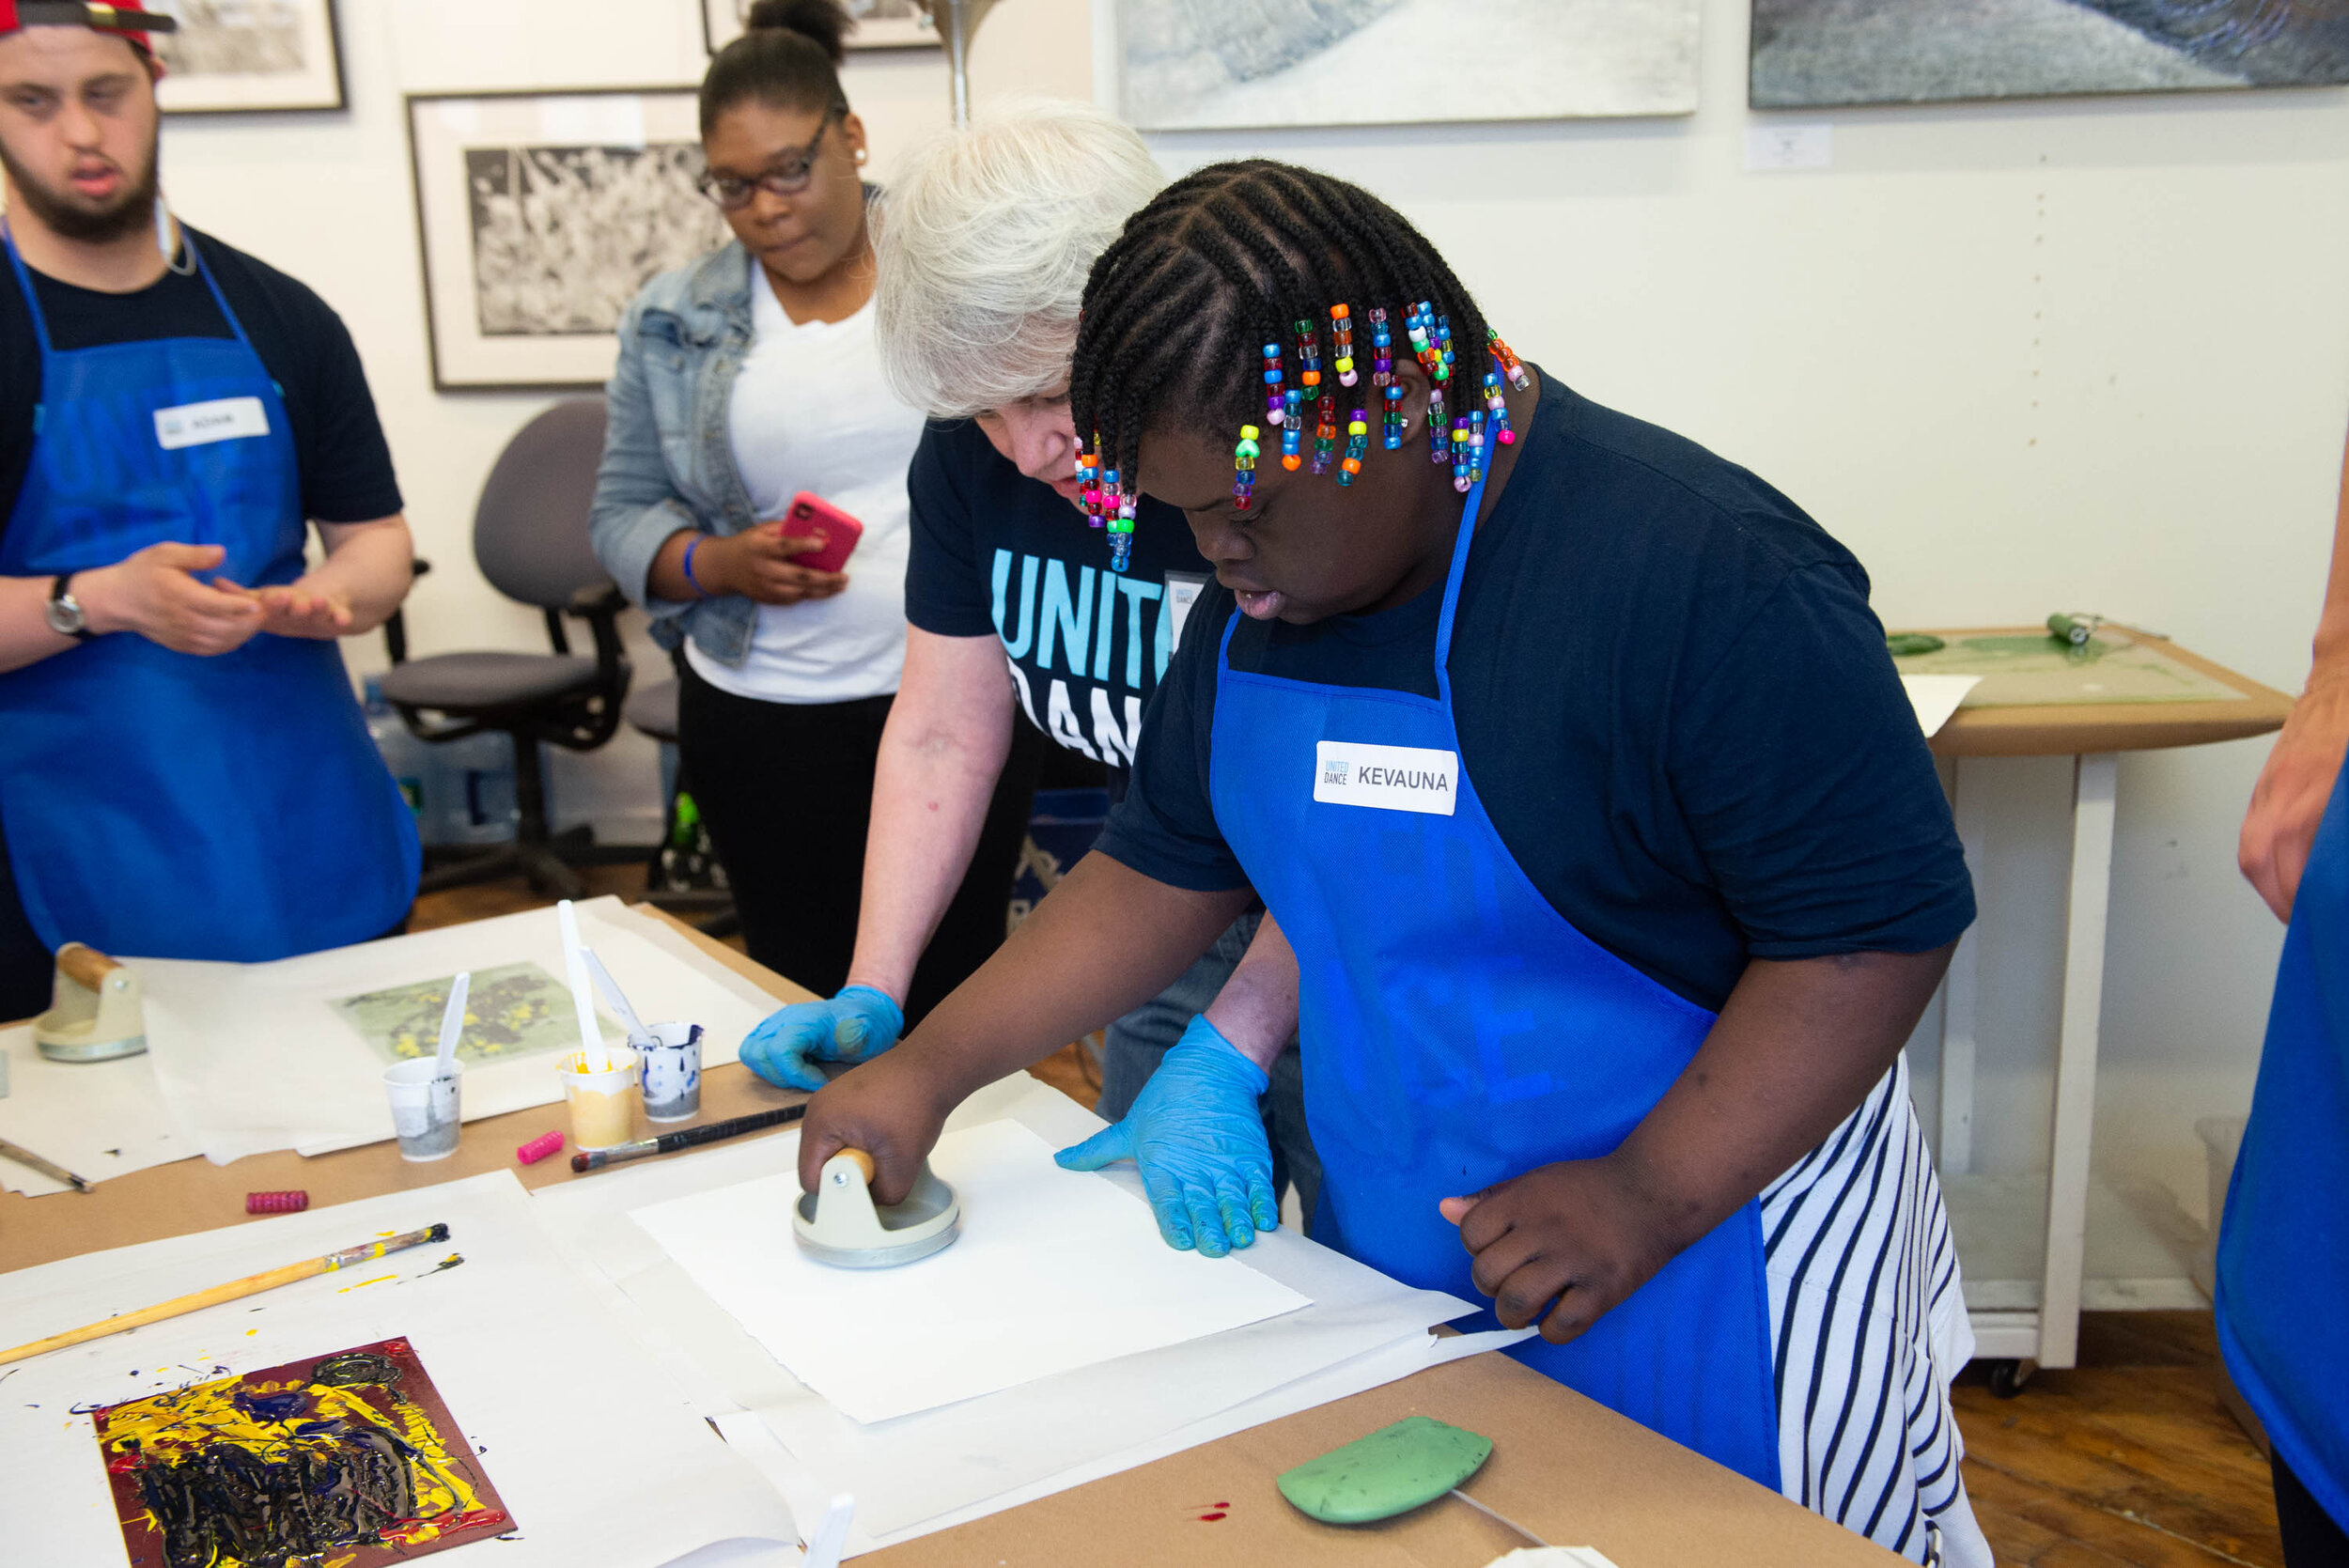 PAINT - Art classes taught by painter Hope Ricciardi in her SOWA artist studio.Discover